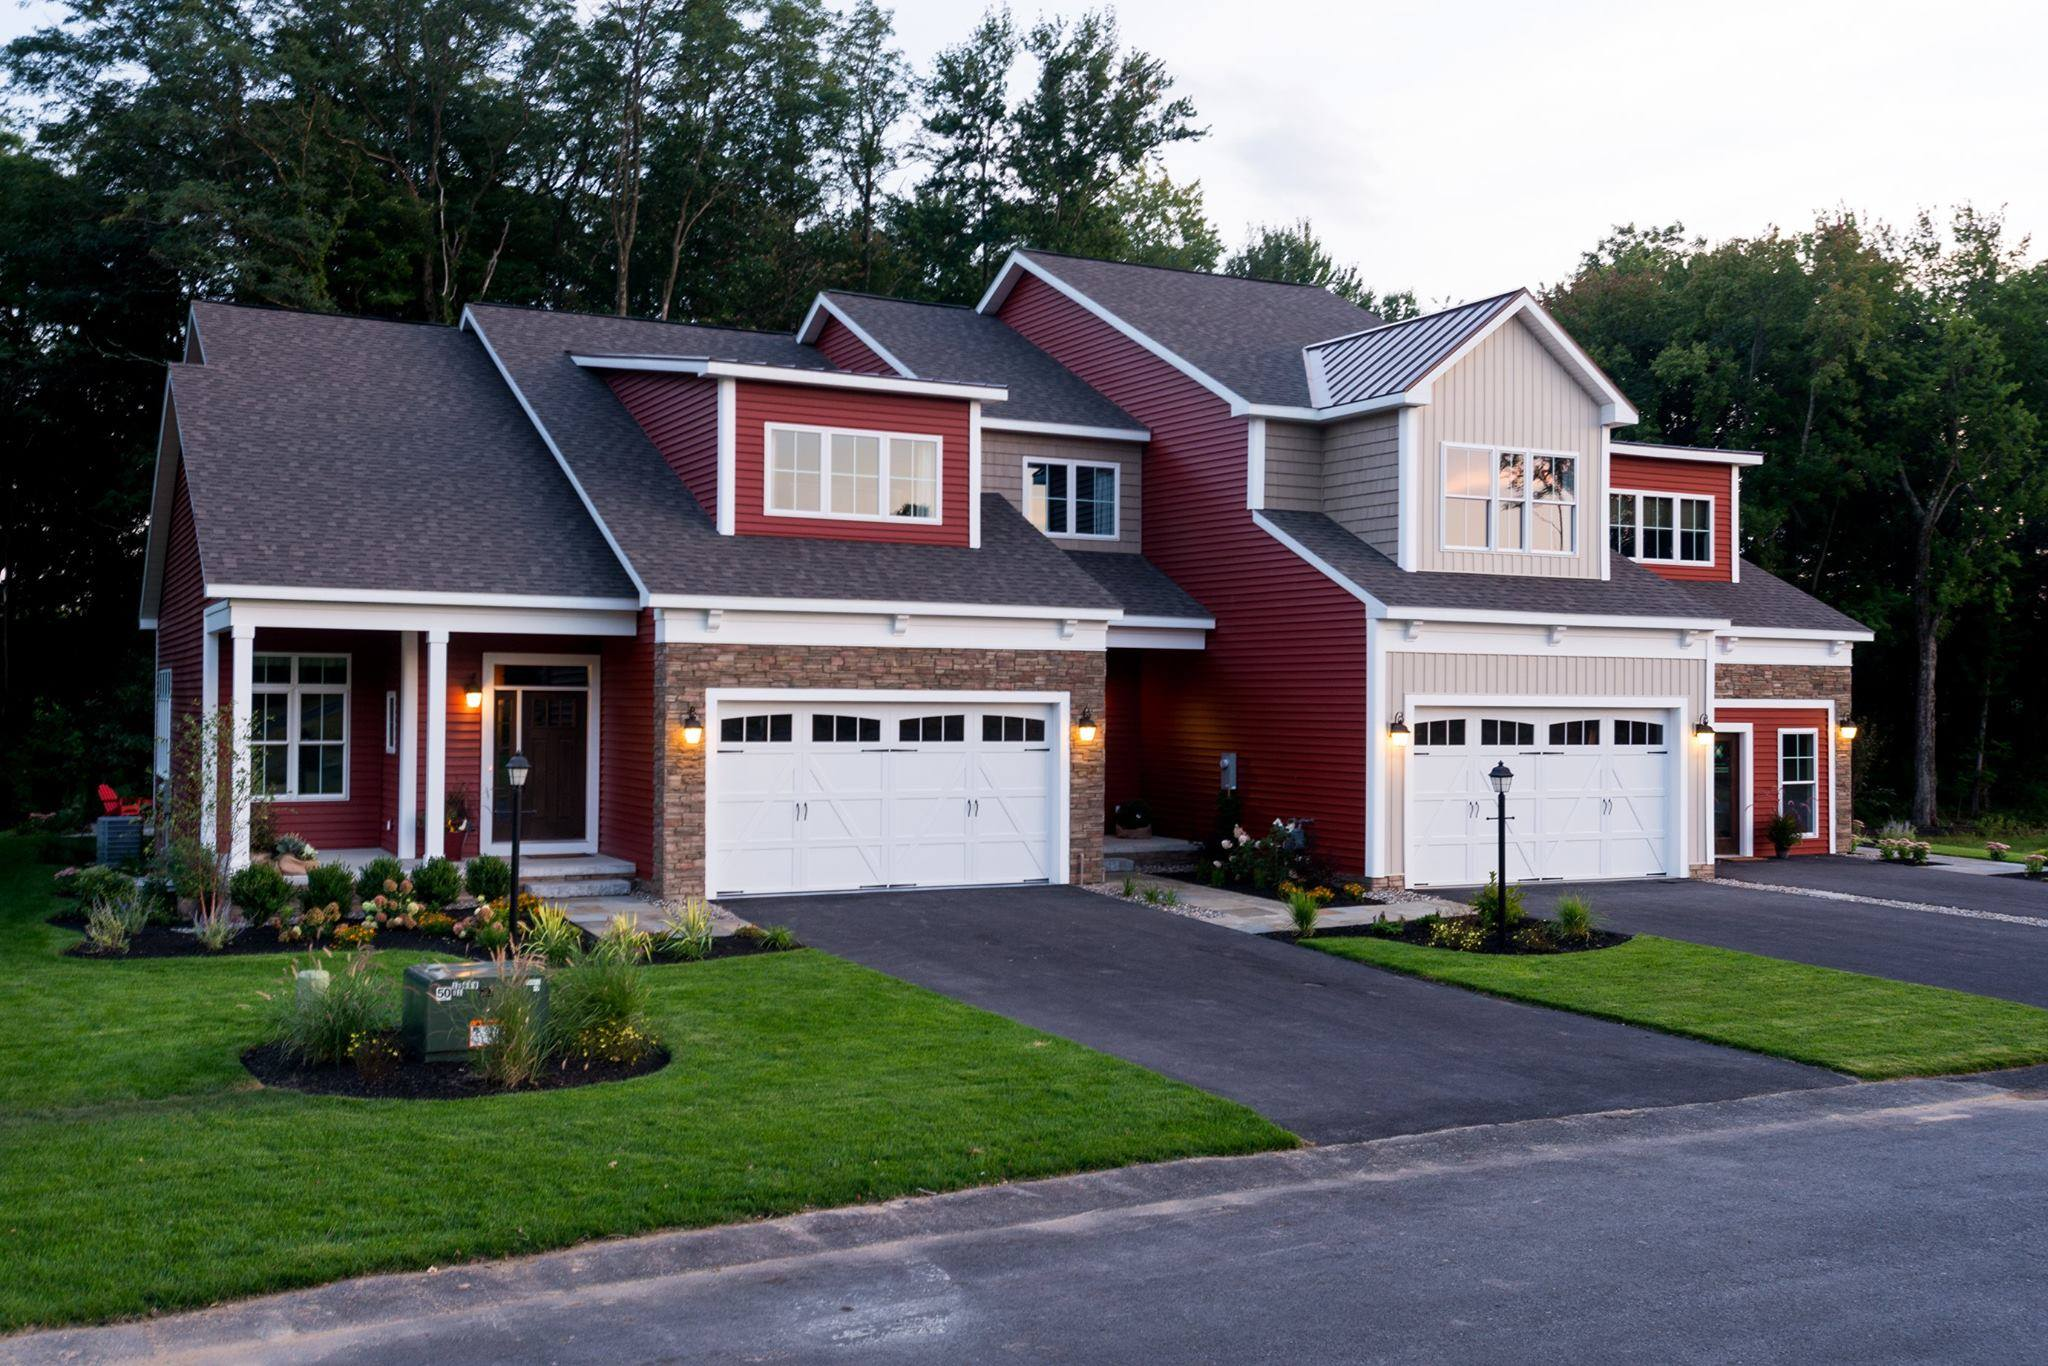 Townhome Exterior-1